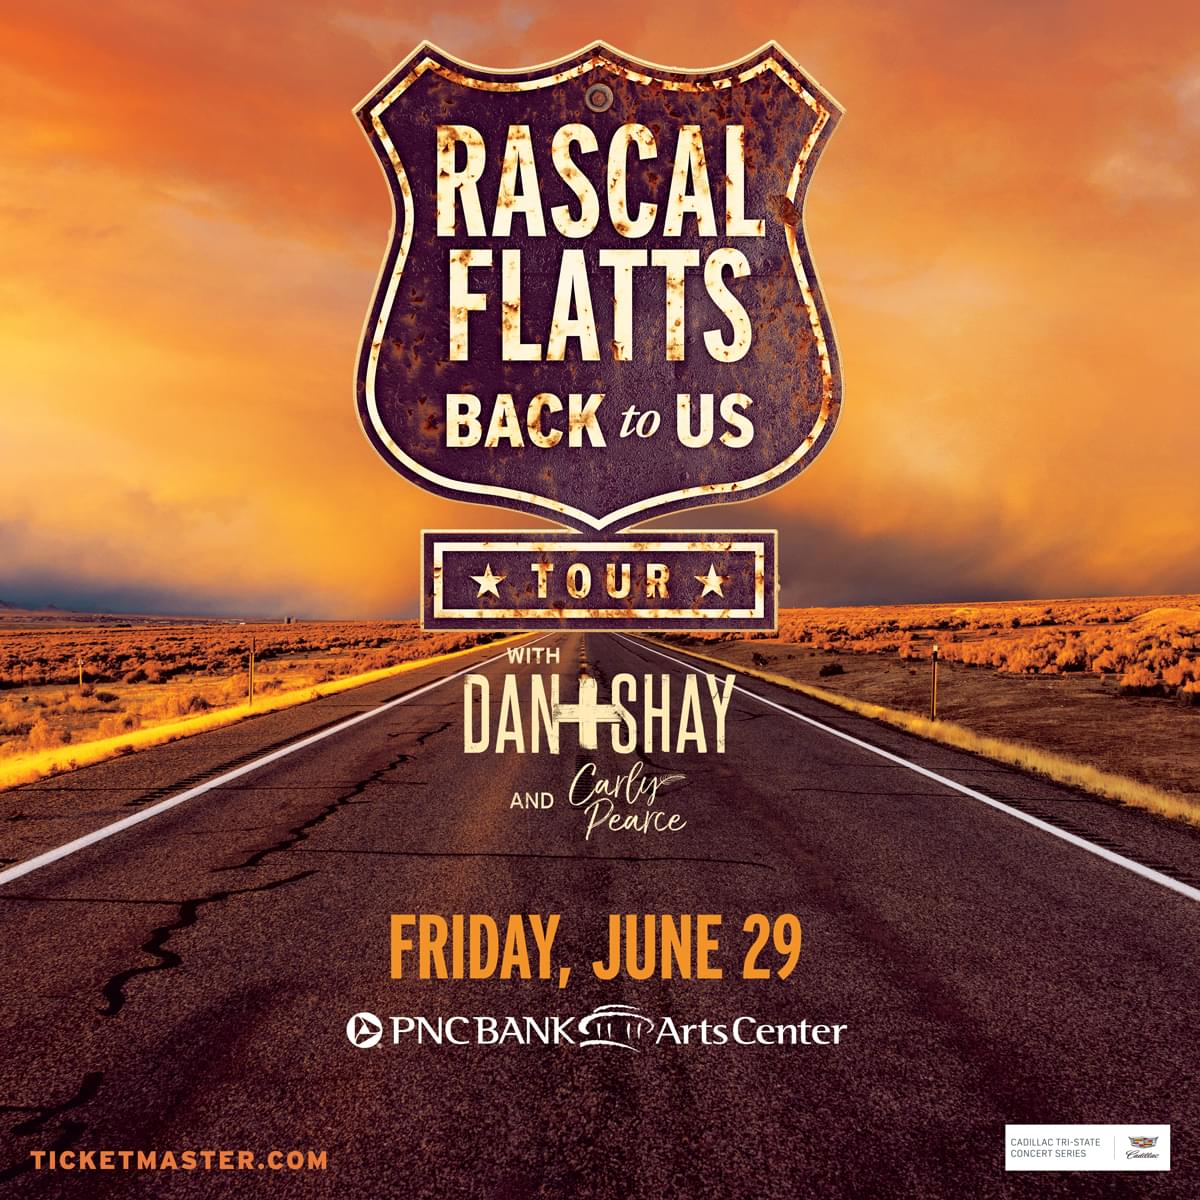 Win a Pair of Tickets and Meet & Greet Passes for Rascal Flatts!